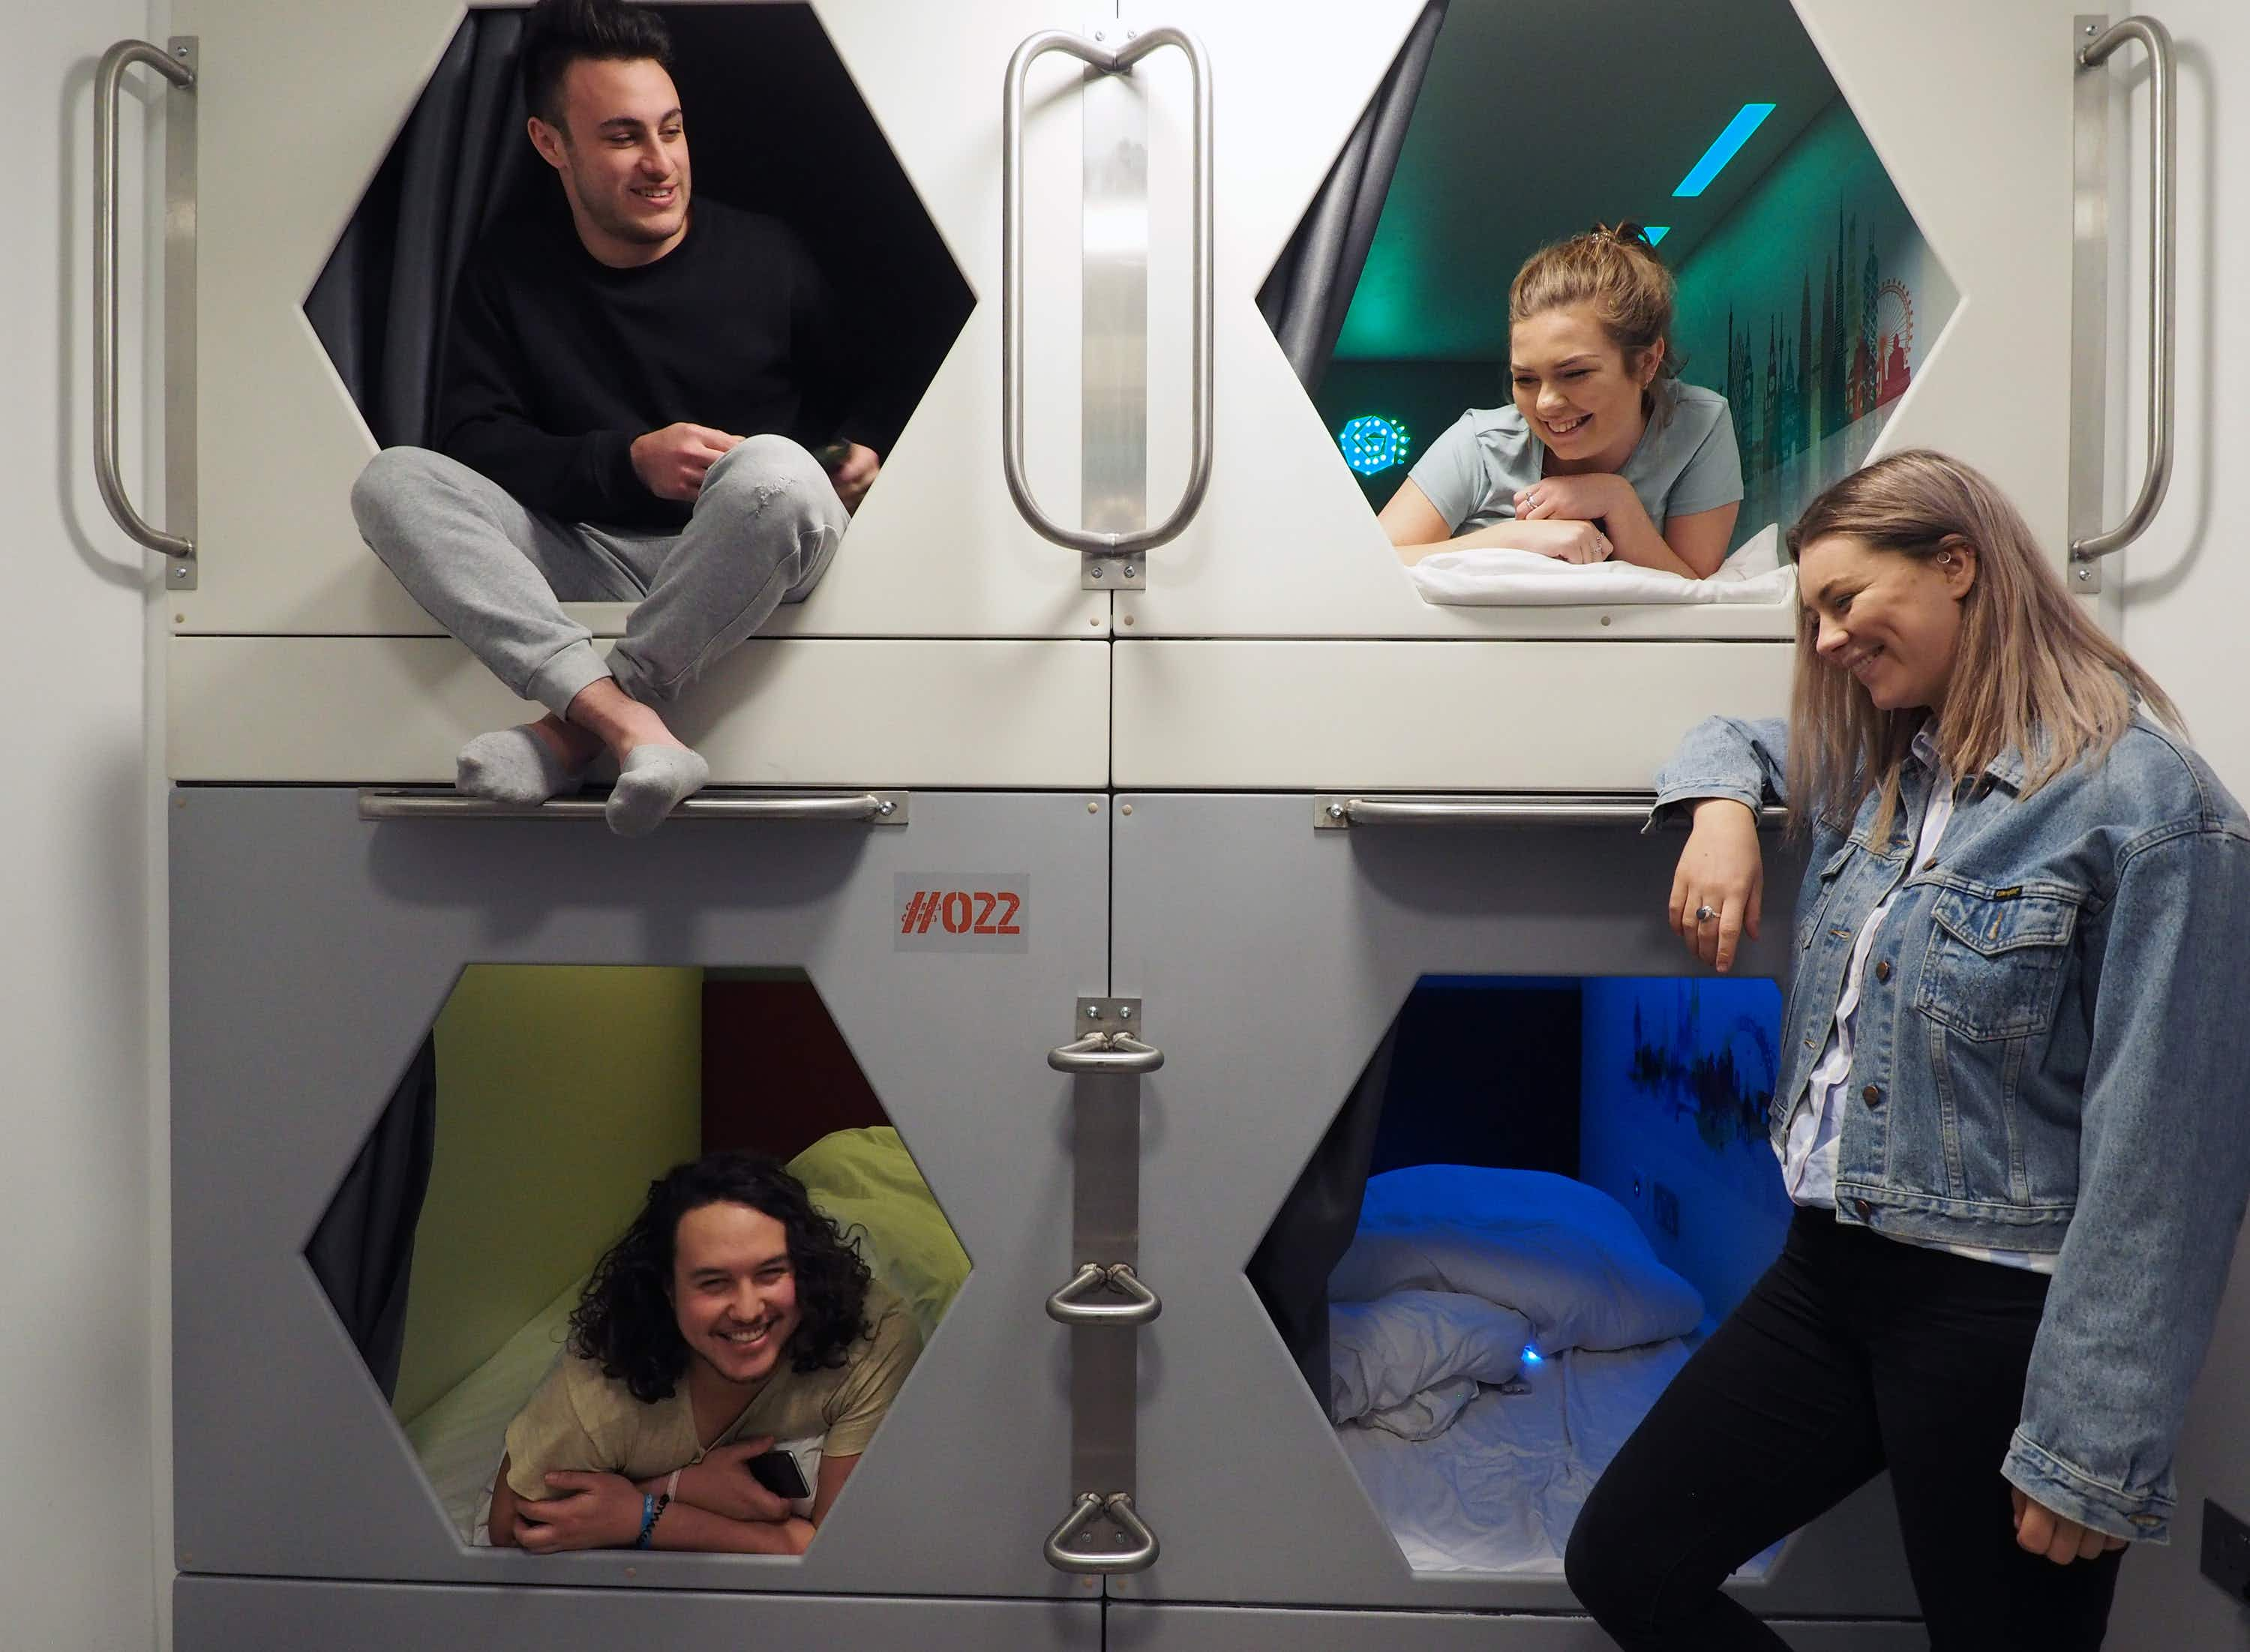 See inside these new capsule beds in a central London hostel